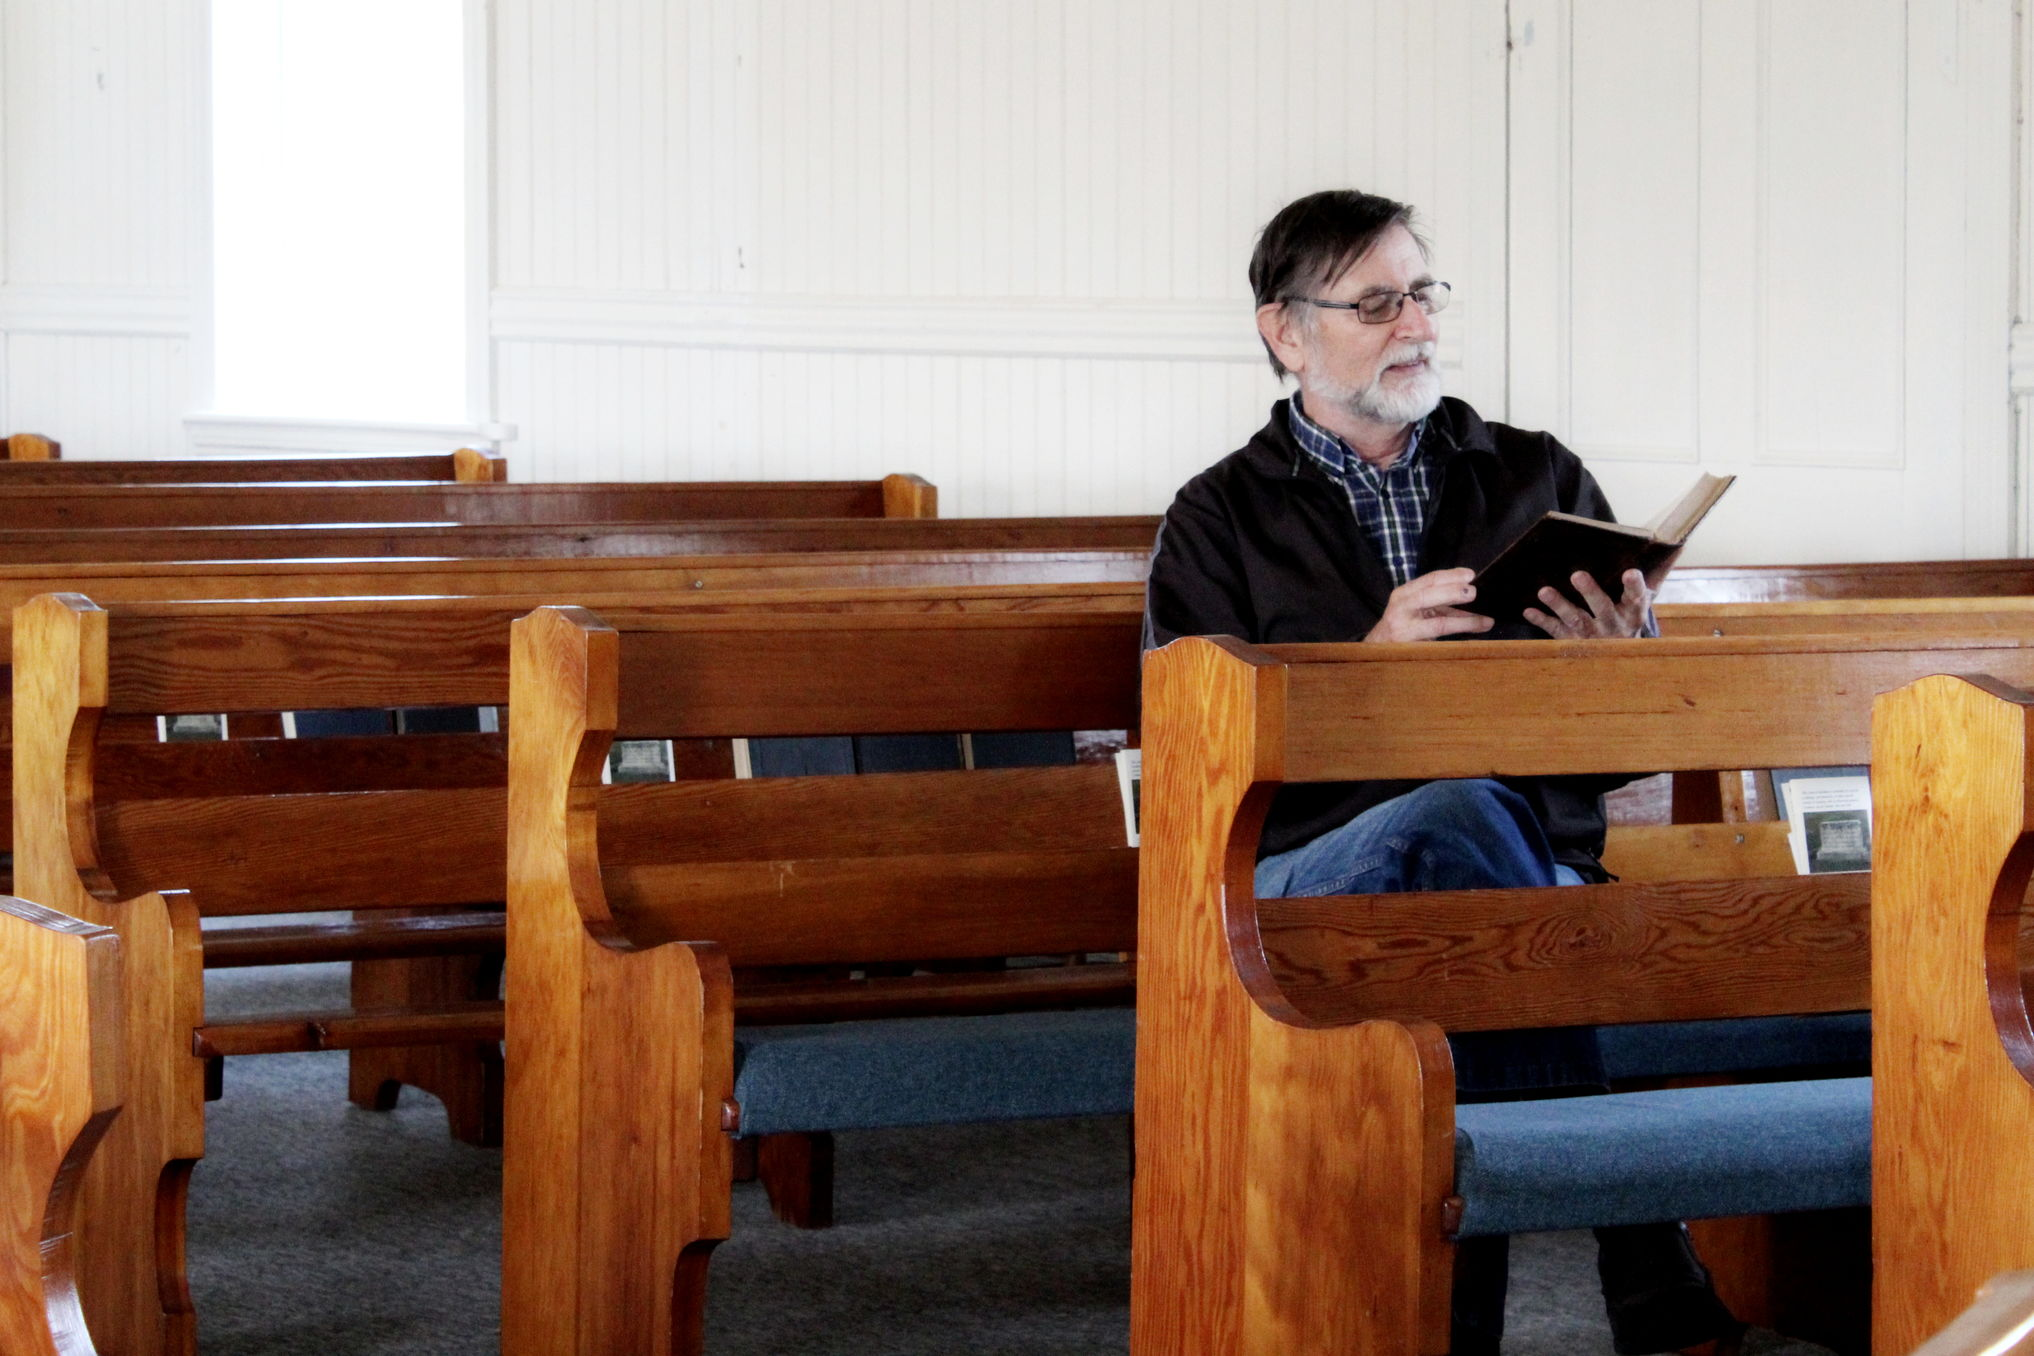 Ernest Braun flips through one of the old hymnals used by Mennonite immigrants at the Chortitz Heritage Church in Randolph.